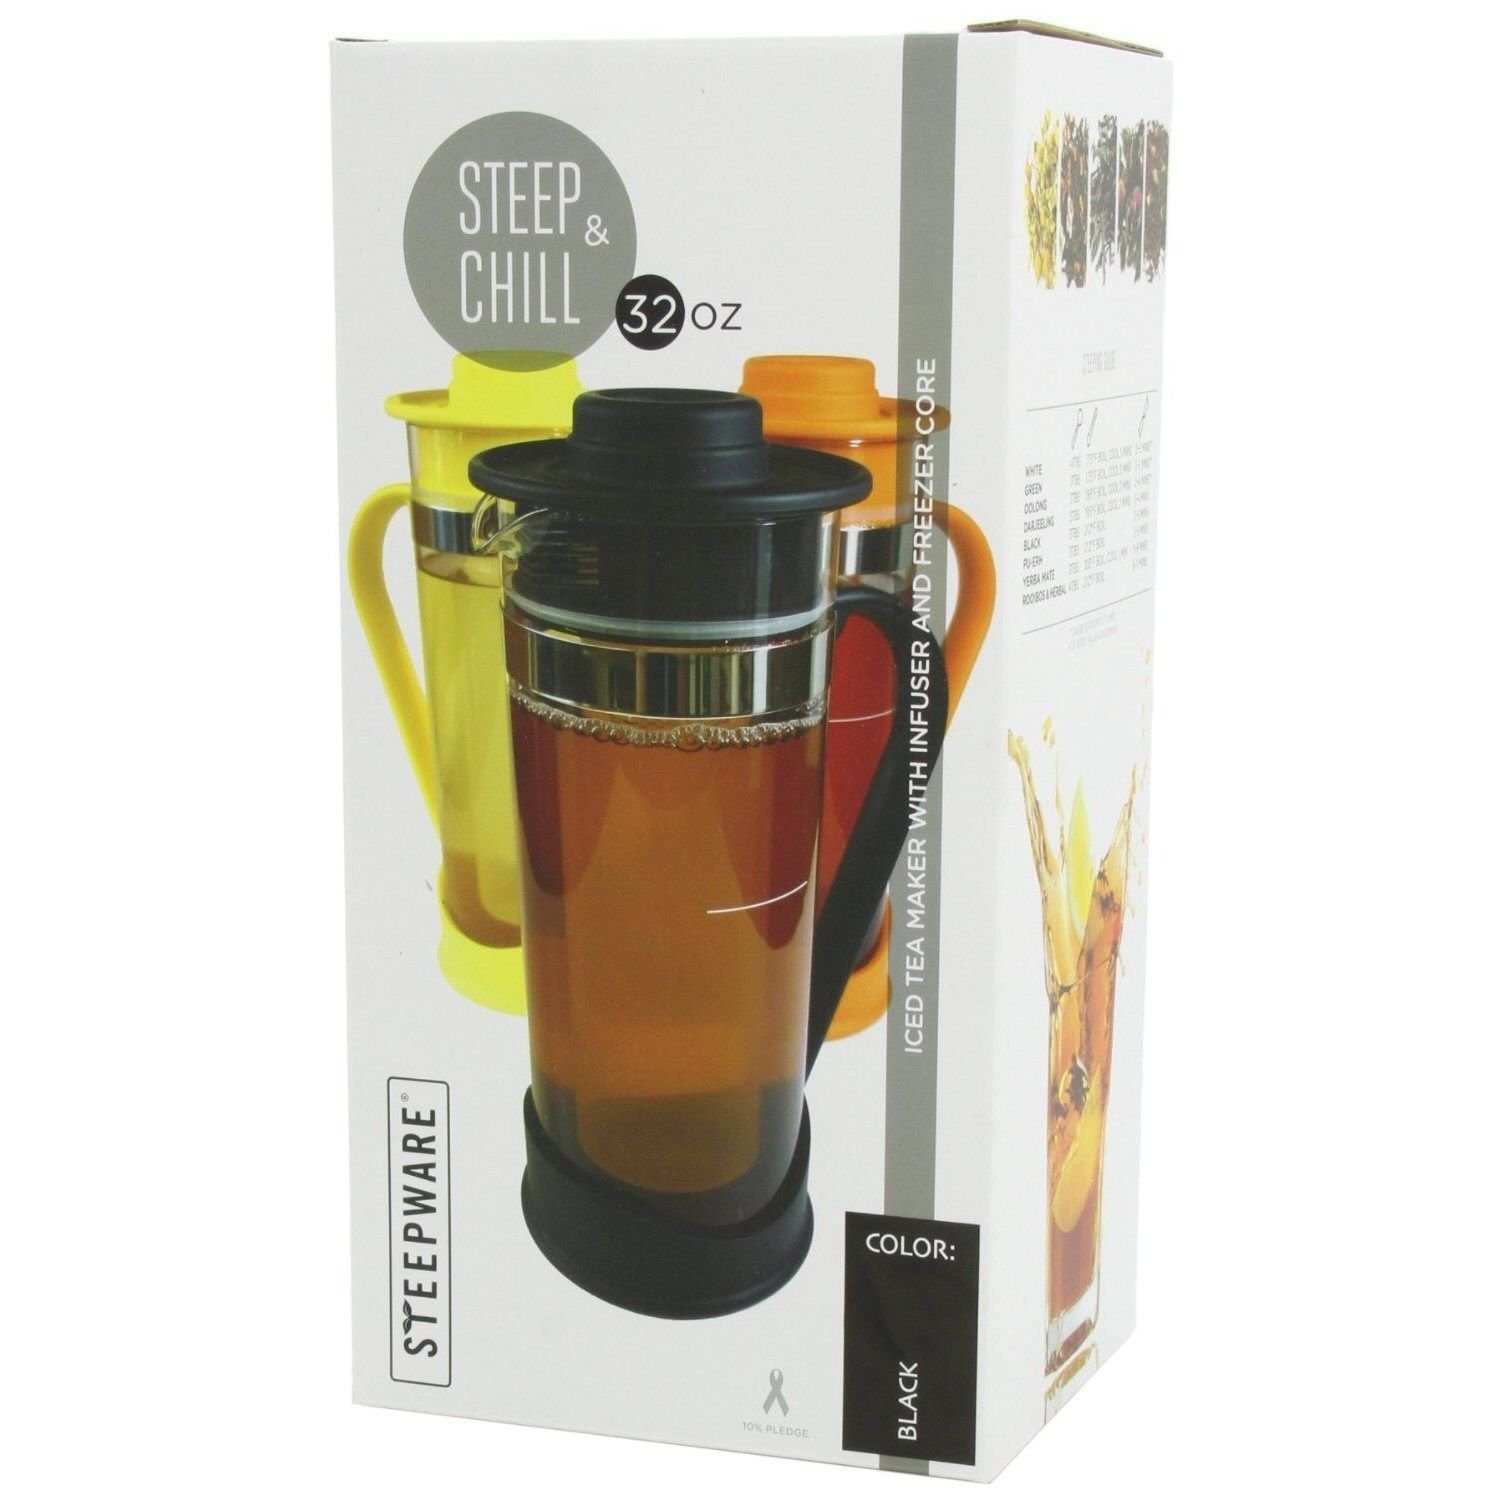 The Tea Spot Steep & Chill Gourmet Iced Tea Maker w/ Tea Infuser - Black